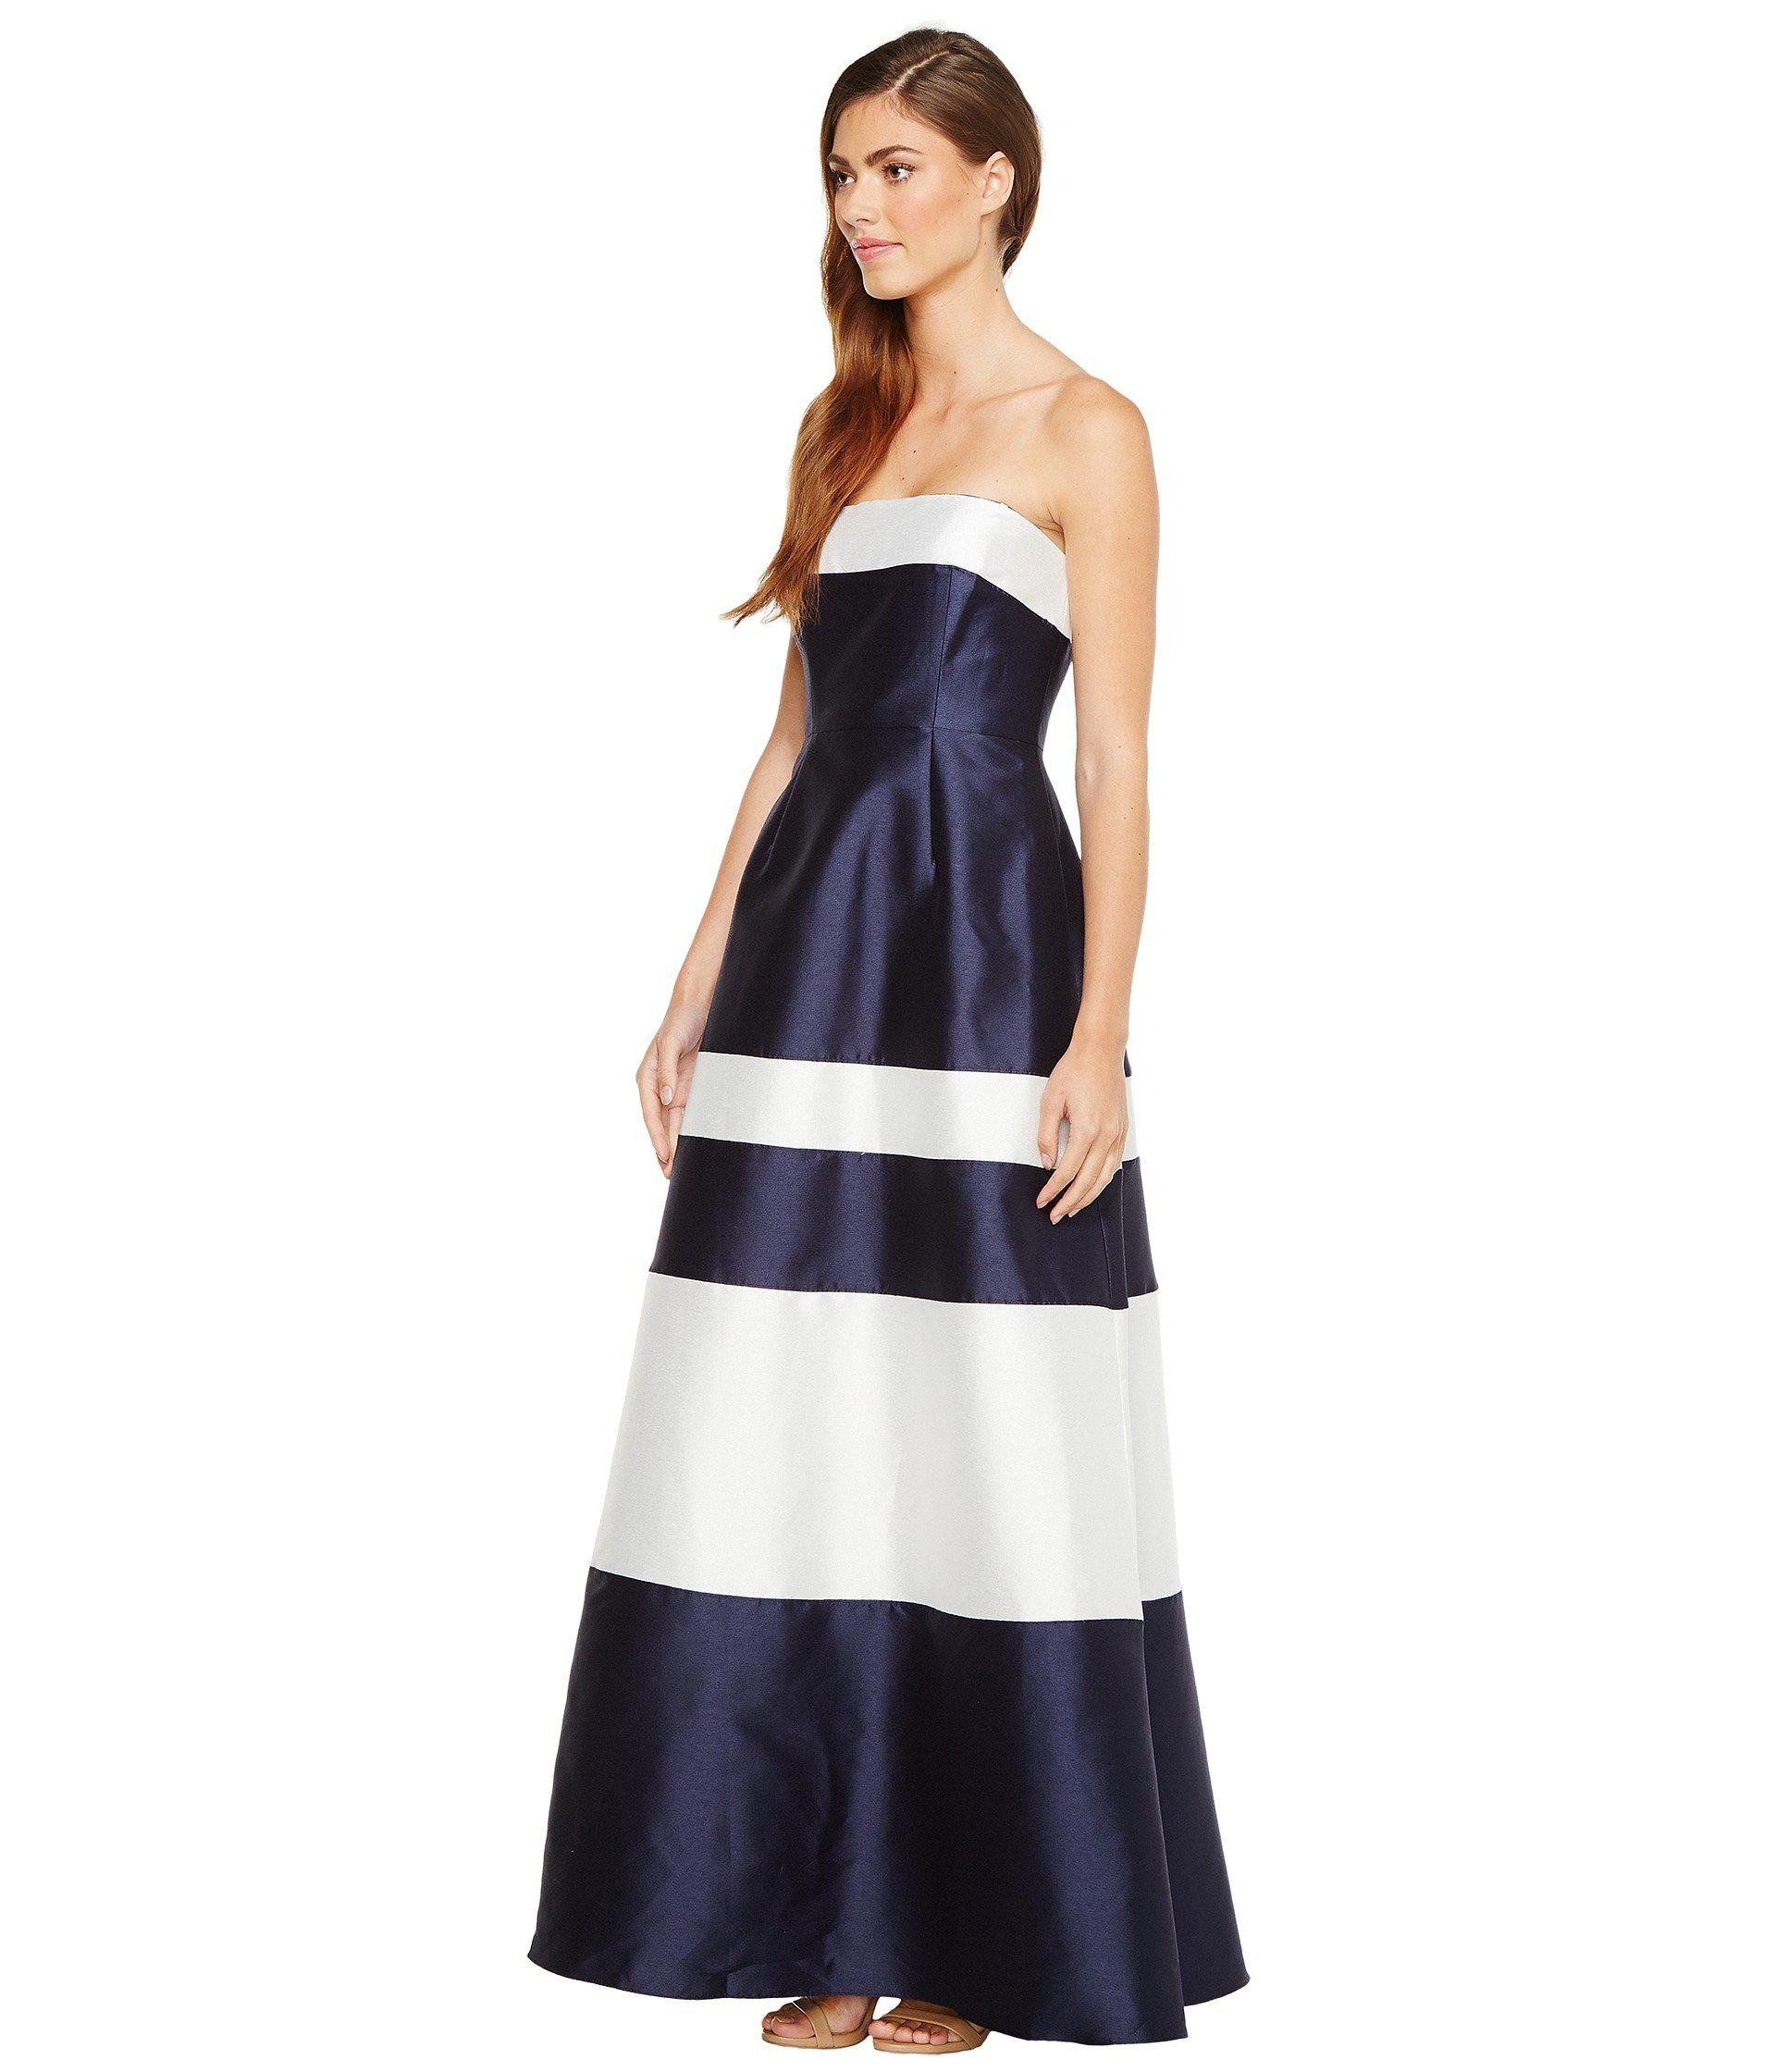 Lyst - Adrianna Papell Iridescent Faille Ball Gown in Blue - Save ...